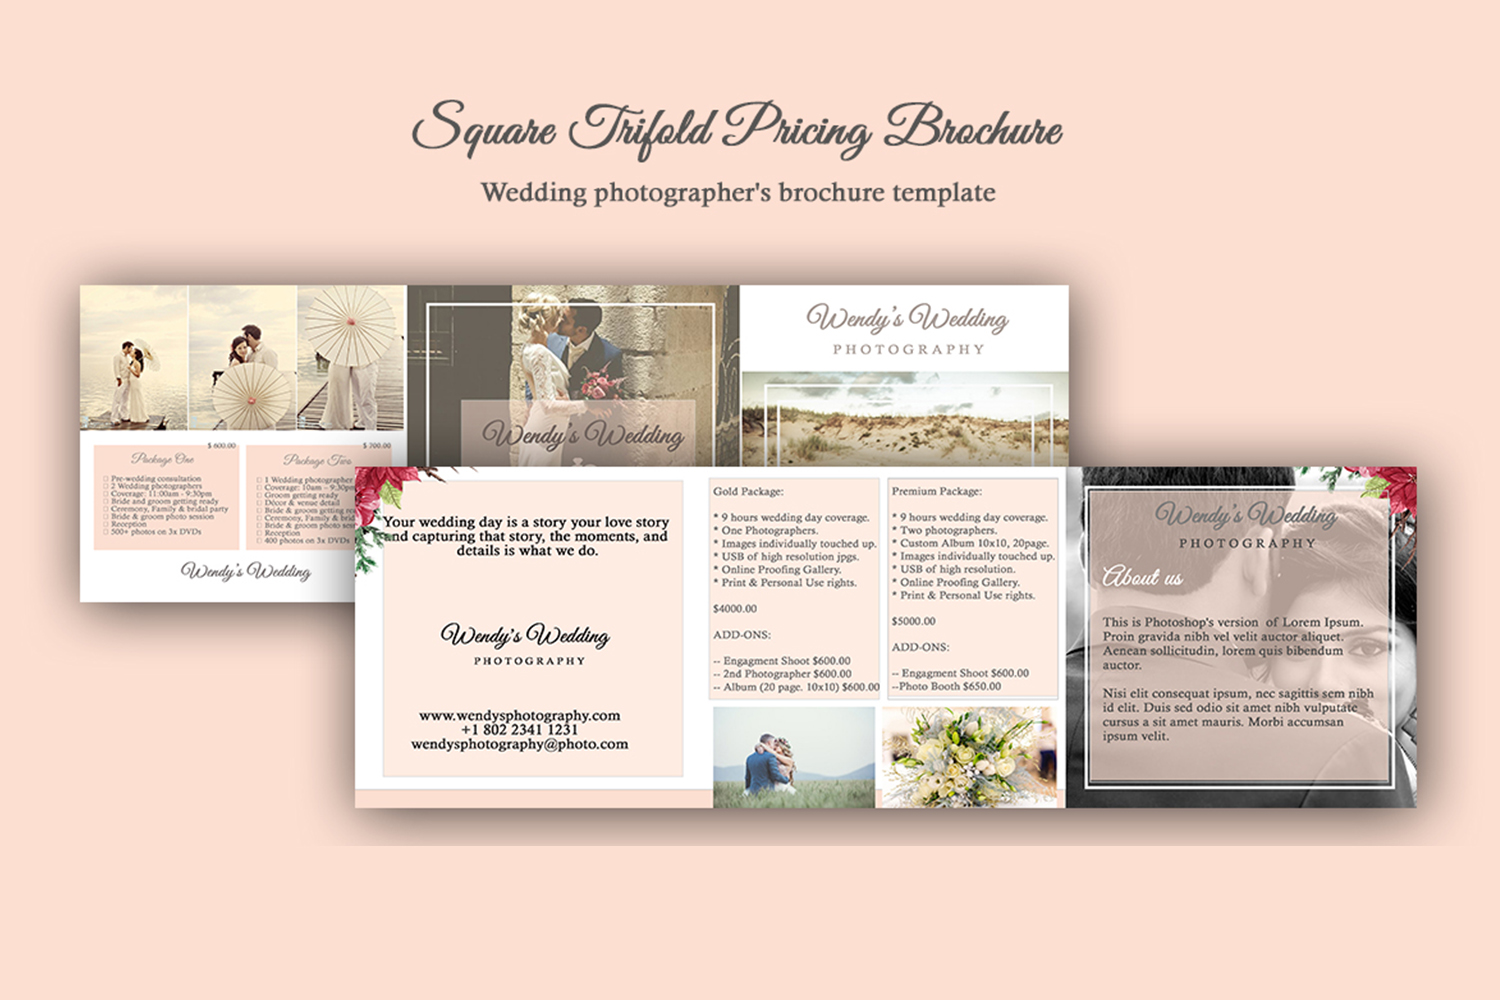 Wedding Trifold Pricing Brochure | 5X5 - Instant Instant dow example image 2